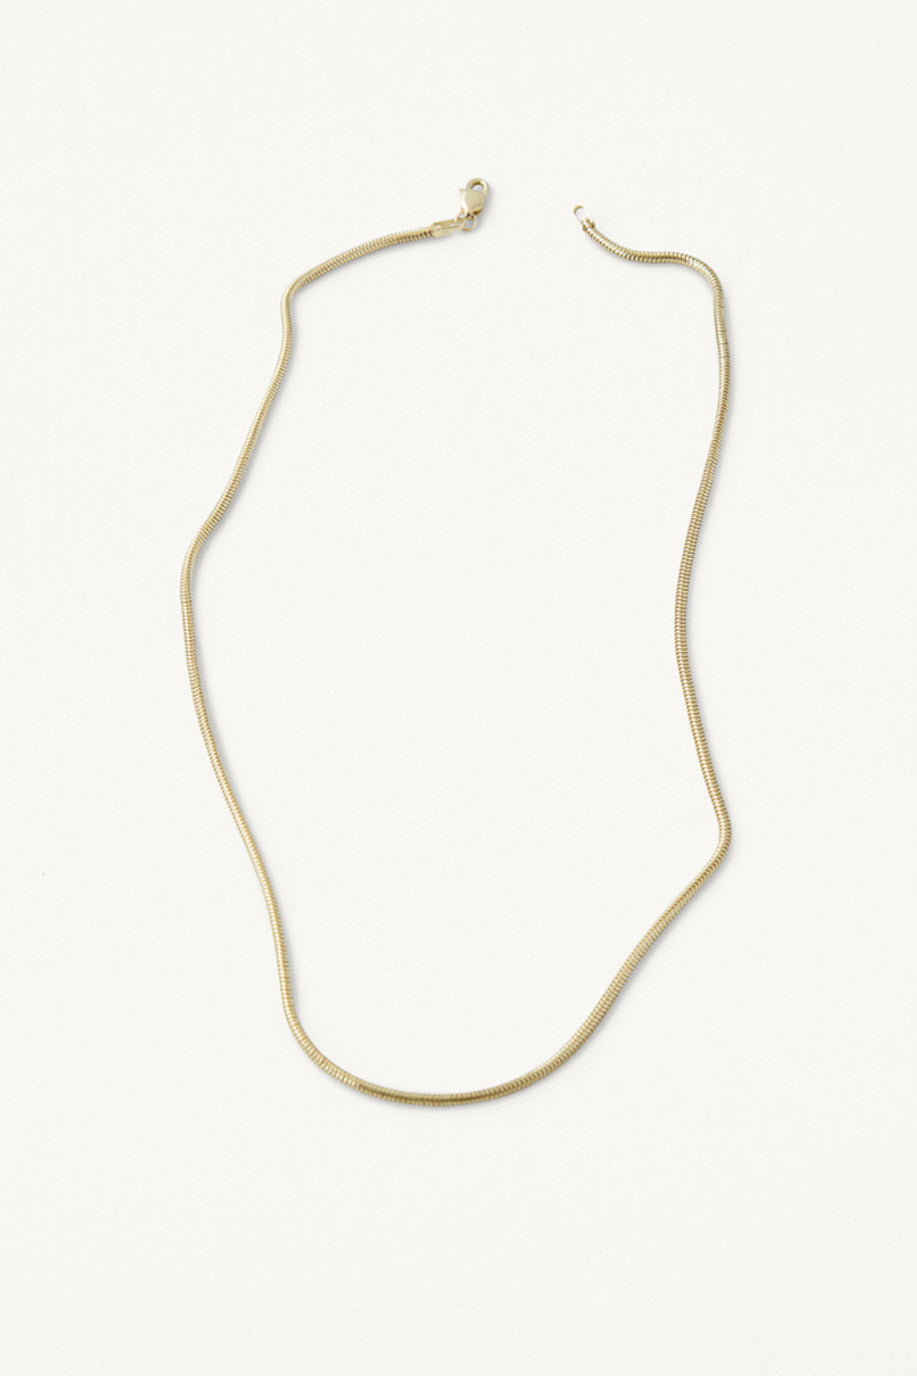 Kathleen Whitaker Snake Chain Necklace - Vert & Vogue